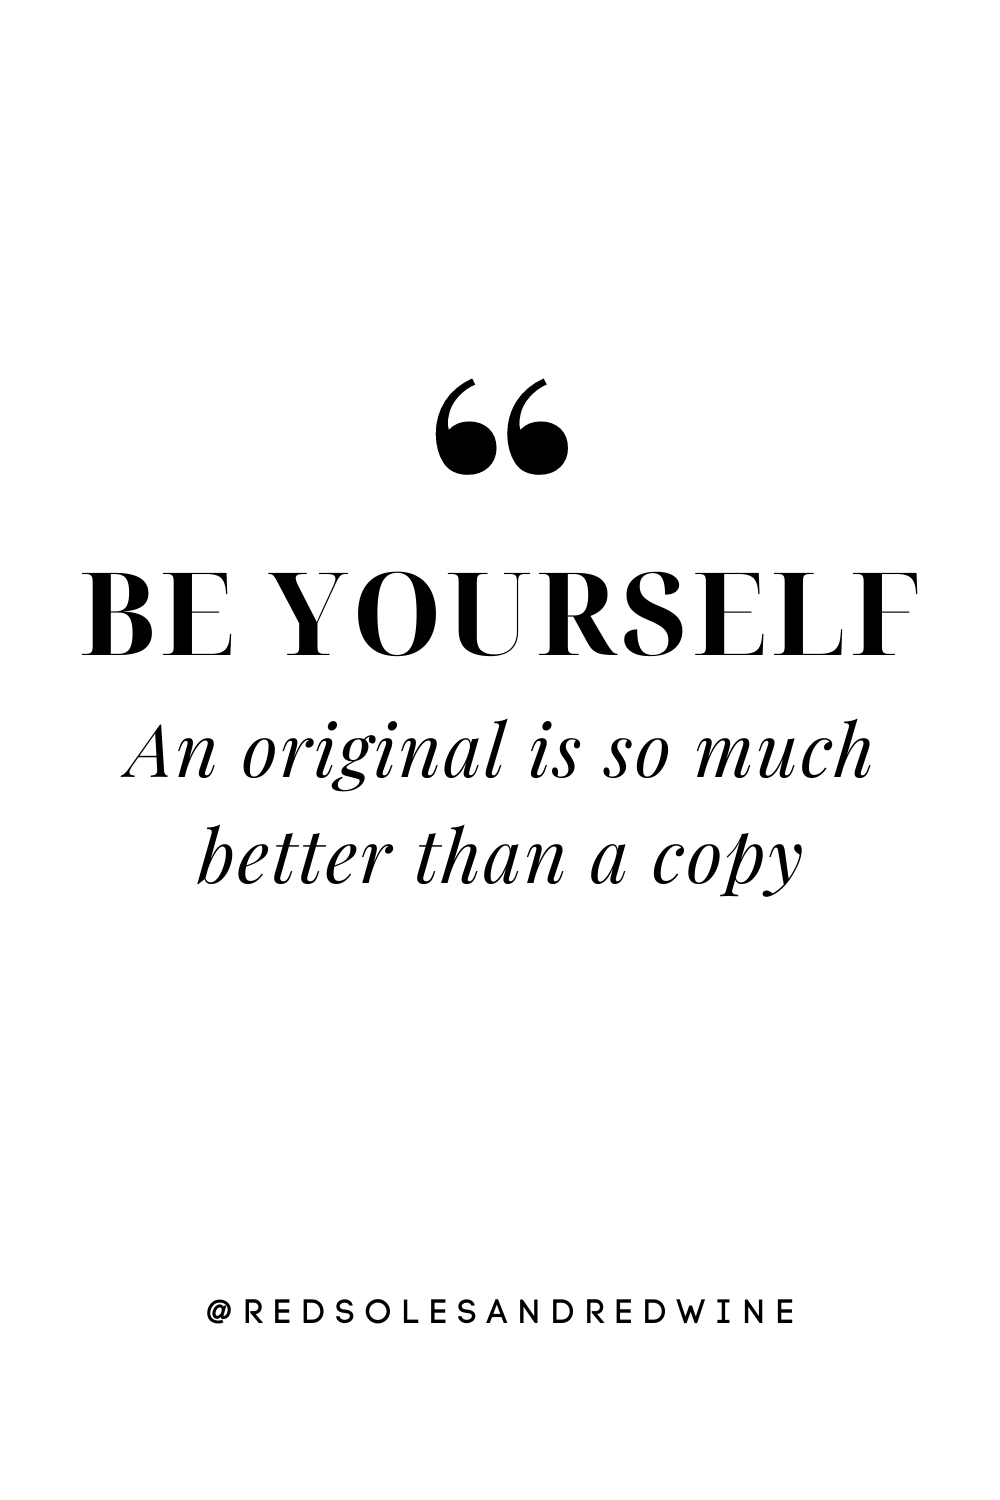 be yourself quote, be yourself quotes be you, be yourself quotes be you inspiration, be yourself quotes inspirational, be yourself quotes unique wallpaper, be yourself quotes inspirational short, short inspirational quotes about loving yourself, be yourself wallpaper, be yourself wallpaper aesthetic, Red Soles and Red Wine